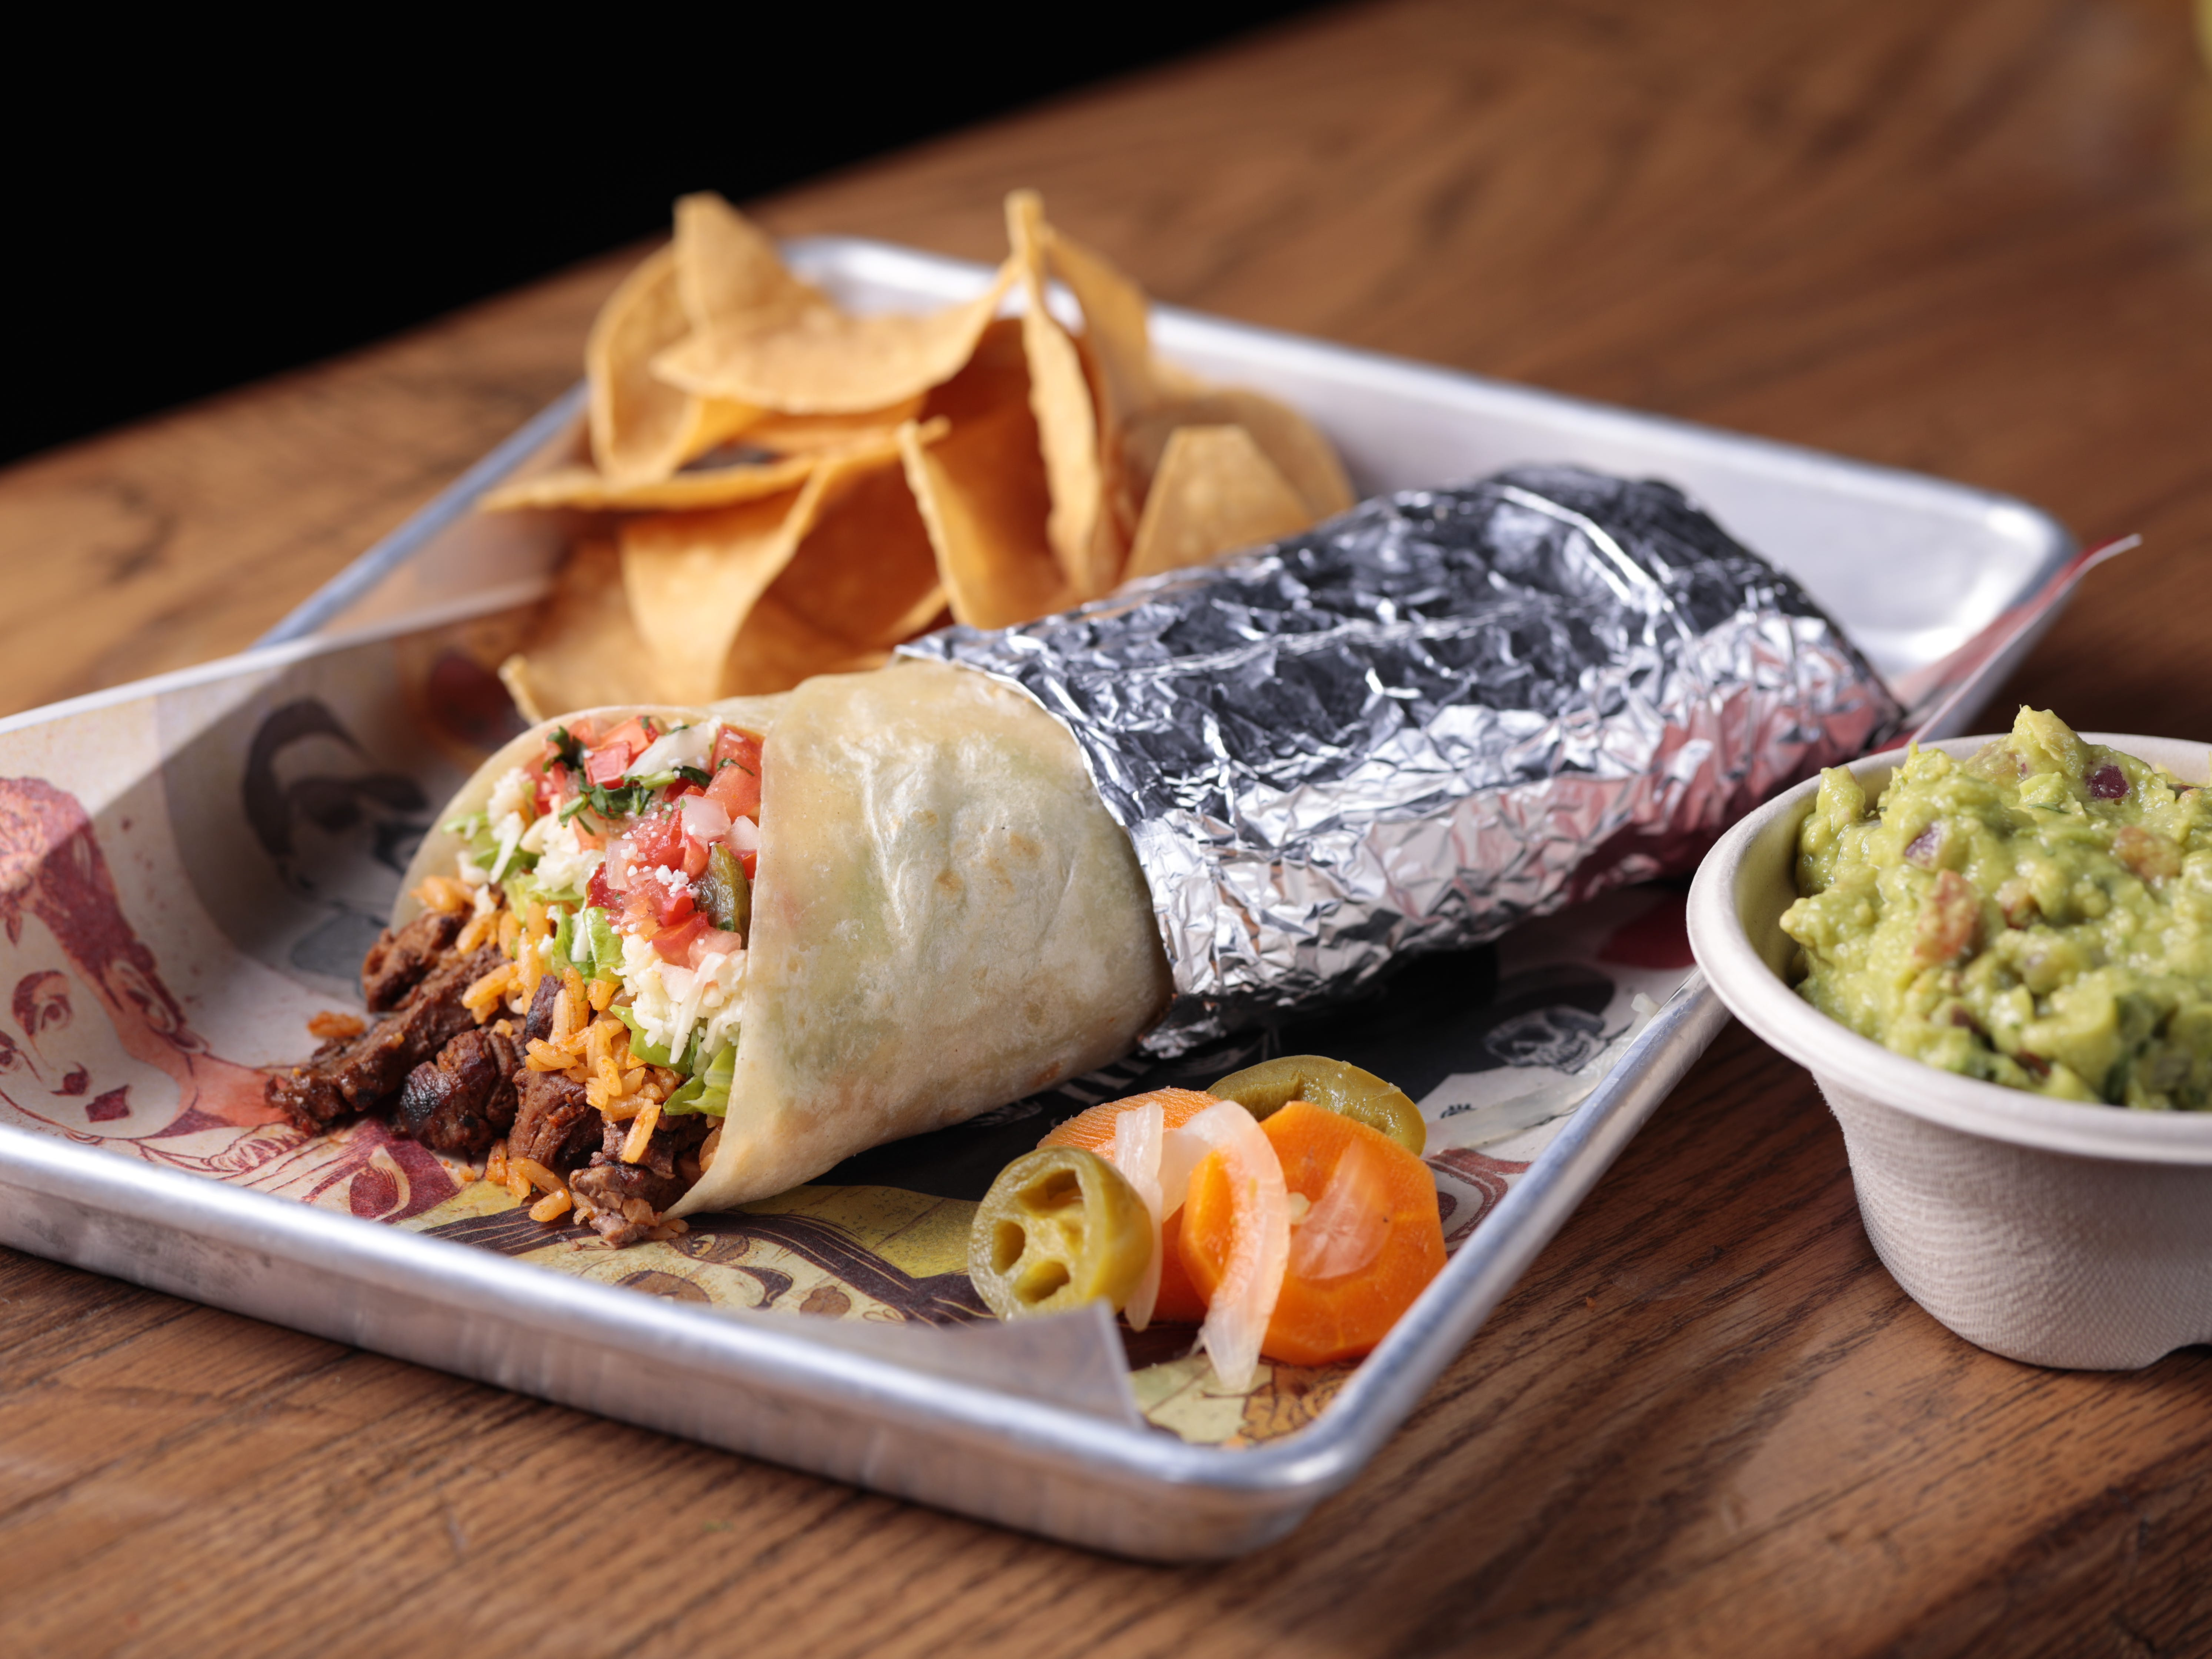 George Lopez's Chingon Kitchen gives diners the option to create a variety of dishes, like burritos, to their preferences.